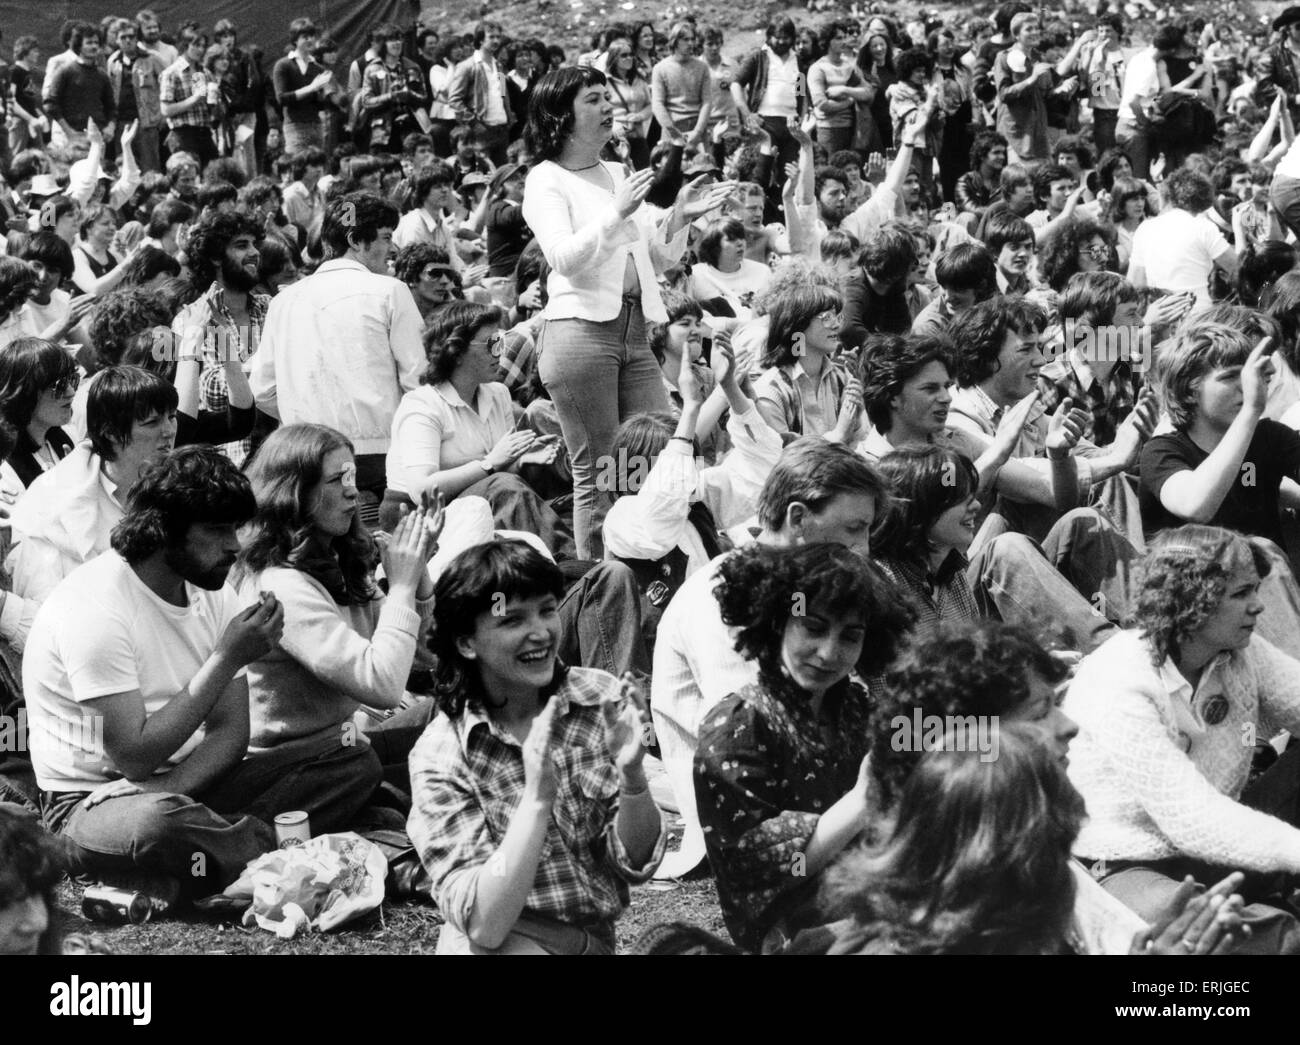 The Loch Lomond Rock Festival, Cameron Wildlife Park, Balloch, Dumbartonshire, Scotland, 27th May 1979. - Stock Image